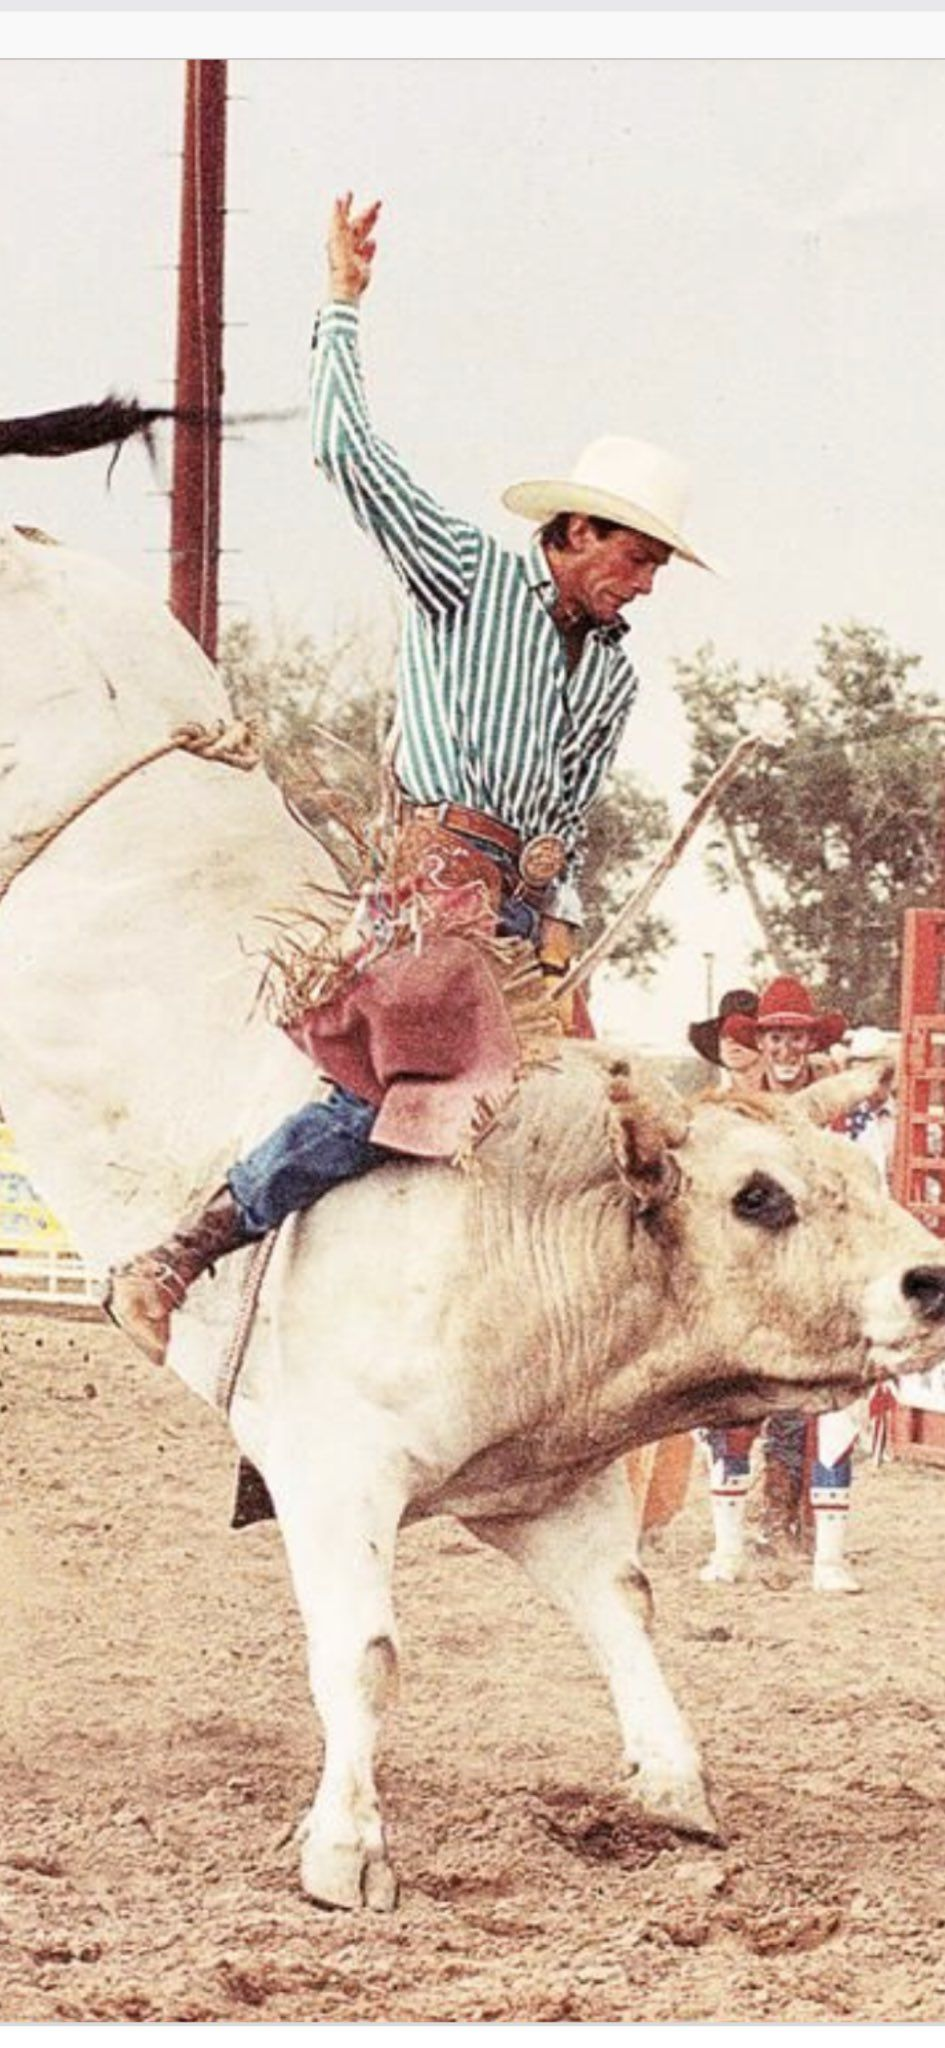 Lane Frost With His Pink Chaps Western Photography Western Wall Art Western Photo